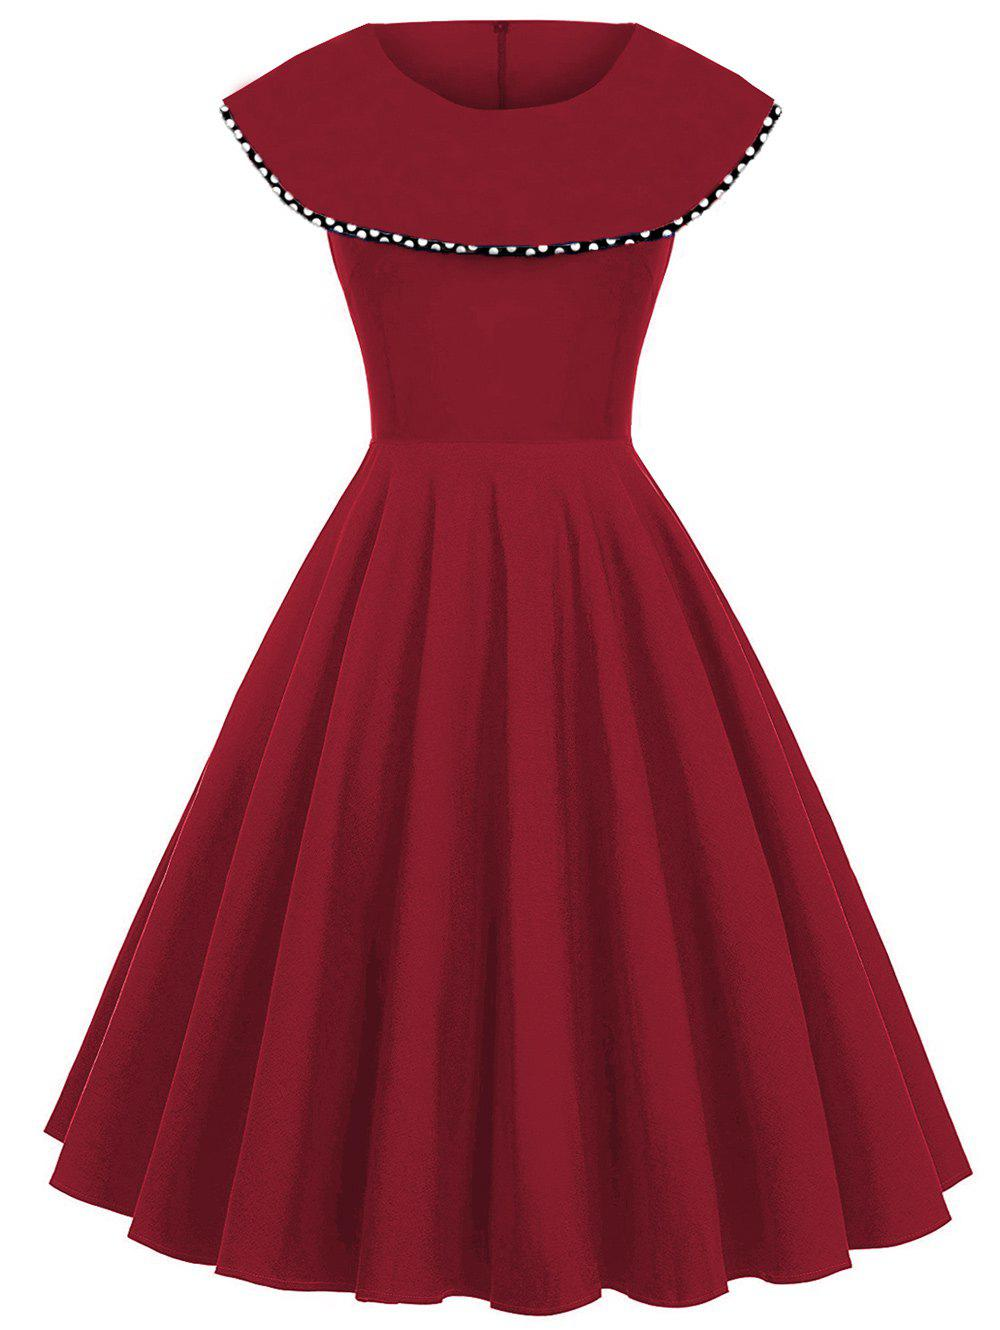 Polka Dot Print Vintage A Line Dress - RED M